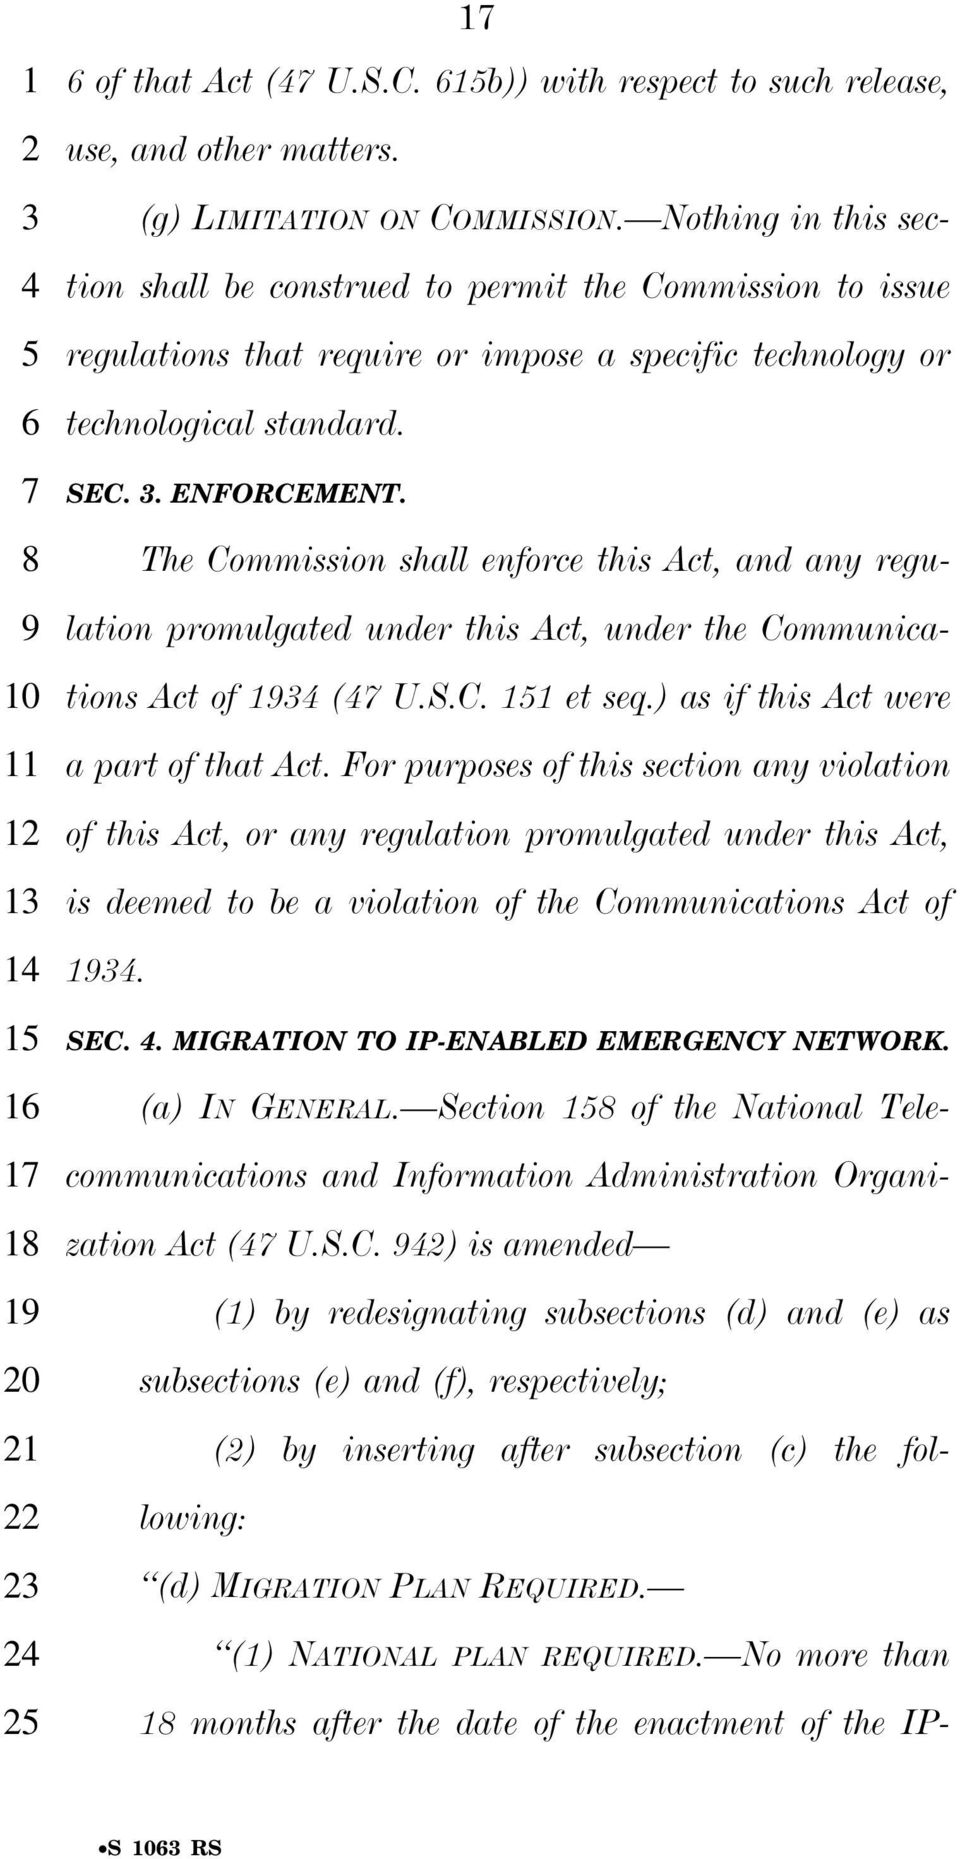 The Commission shall enforce this Act, and any regulation promulgated under this Act, under the Communications Act of 1 ( U.S.C. et seq.) as if this Act were a part of that Act.